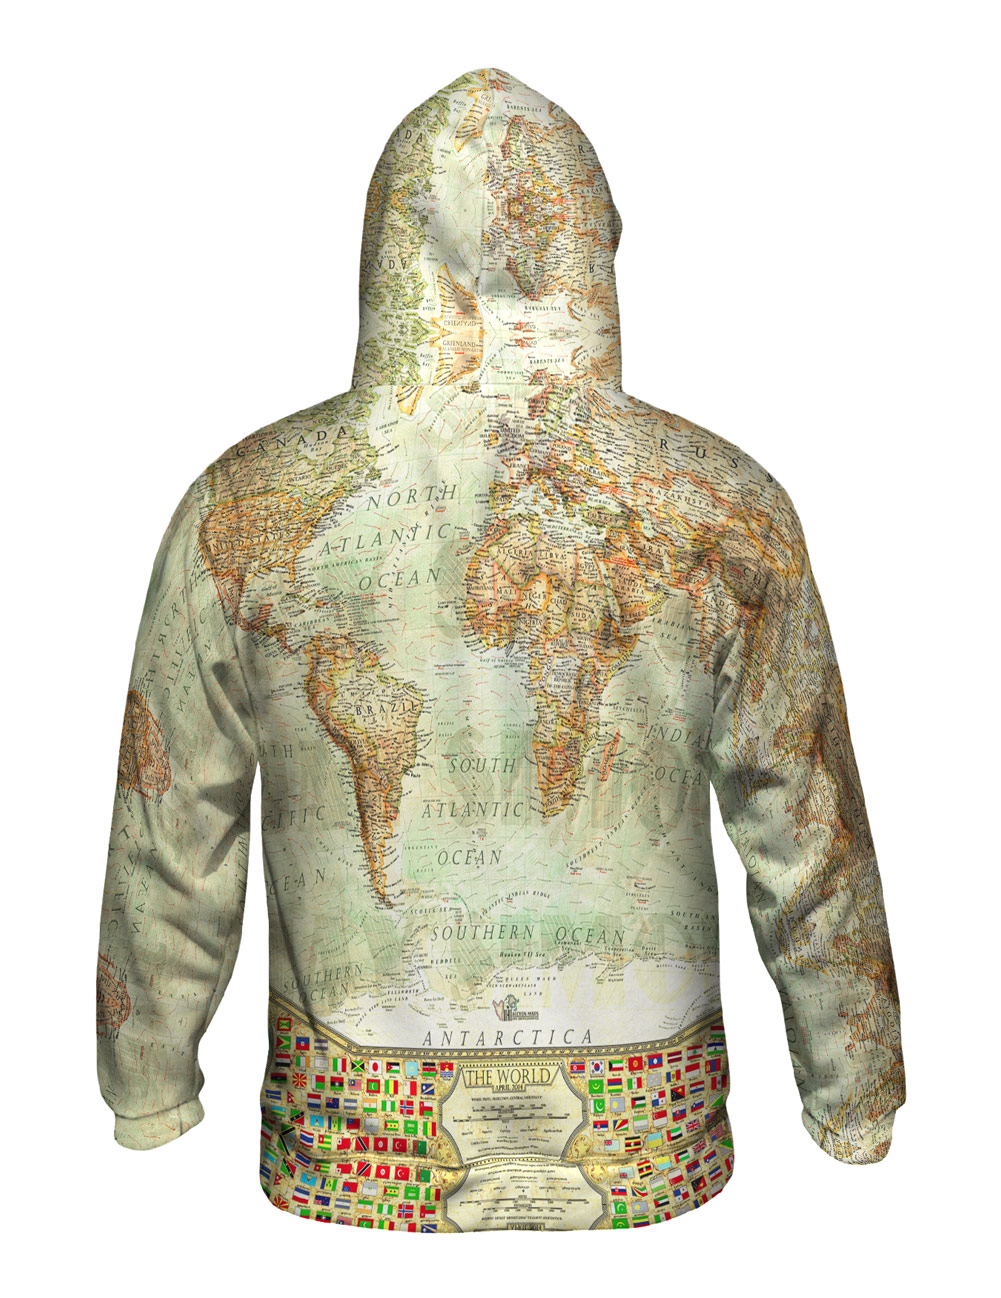 Yizzam ash world map new mens hoodie sweater xs s m l xl 2xl yizzam ash world map new mens hoodie sweater gumiabroncs Choice Image